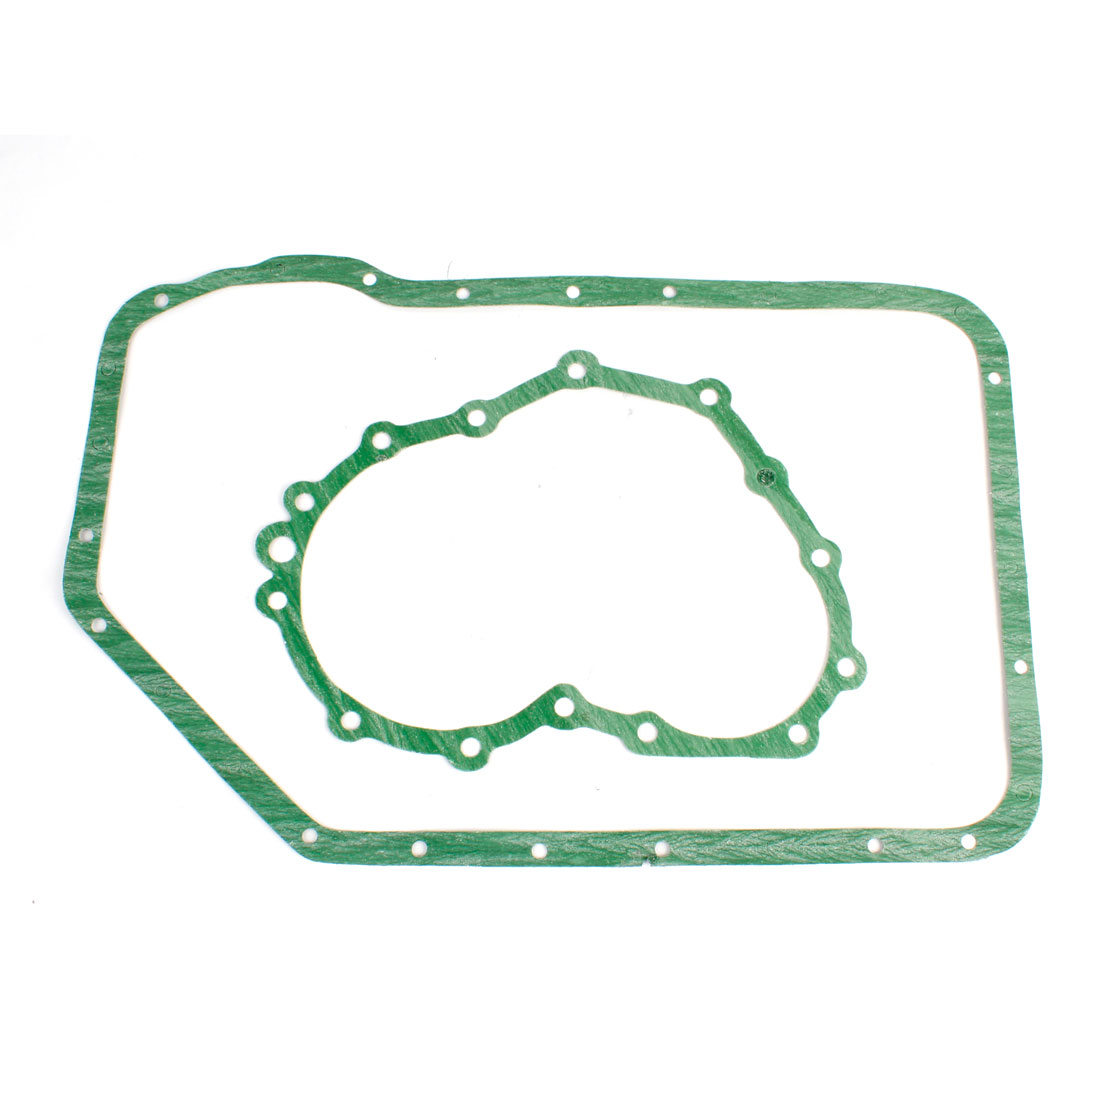 01V 321 371 Car Automobile Transmission Pan Gasket Repair Part